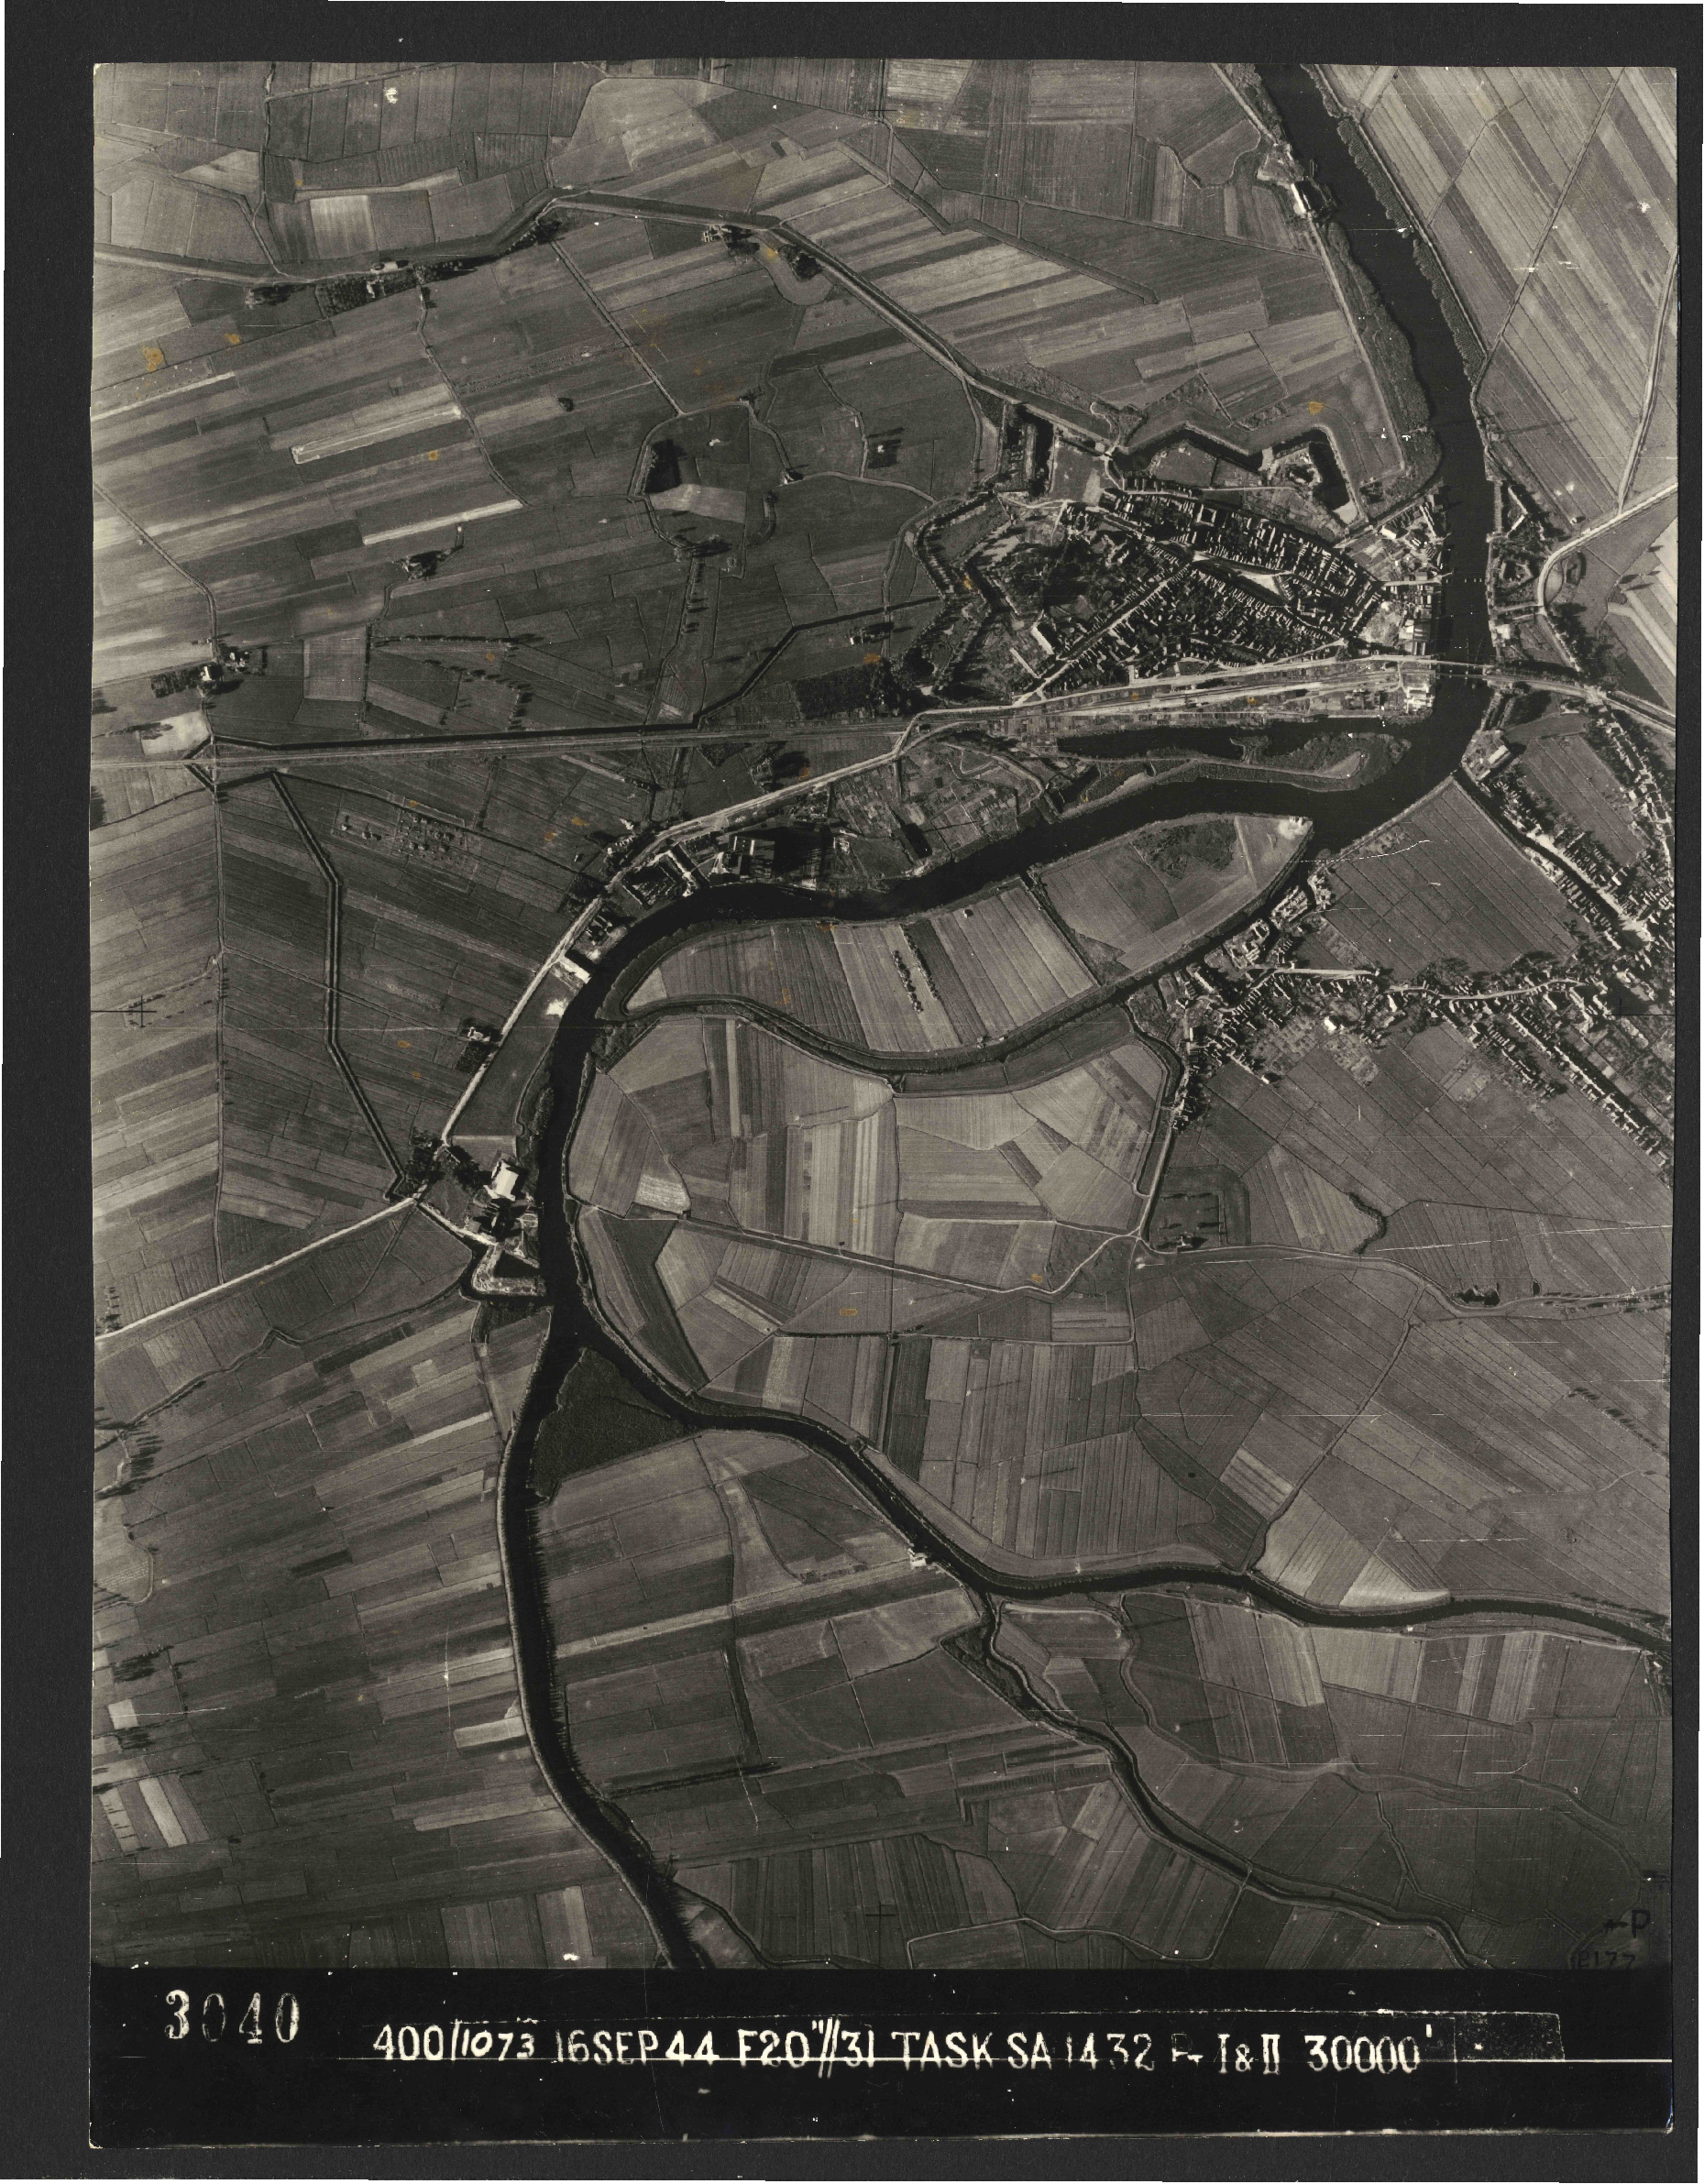 Collection RAF aerial photos 1940-1945 - flight 013, run 10, photo 3040